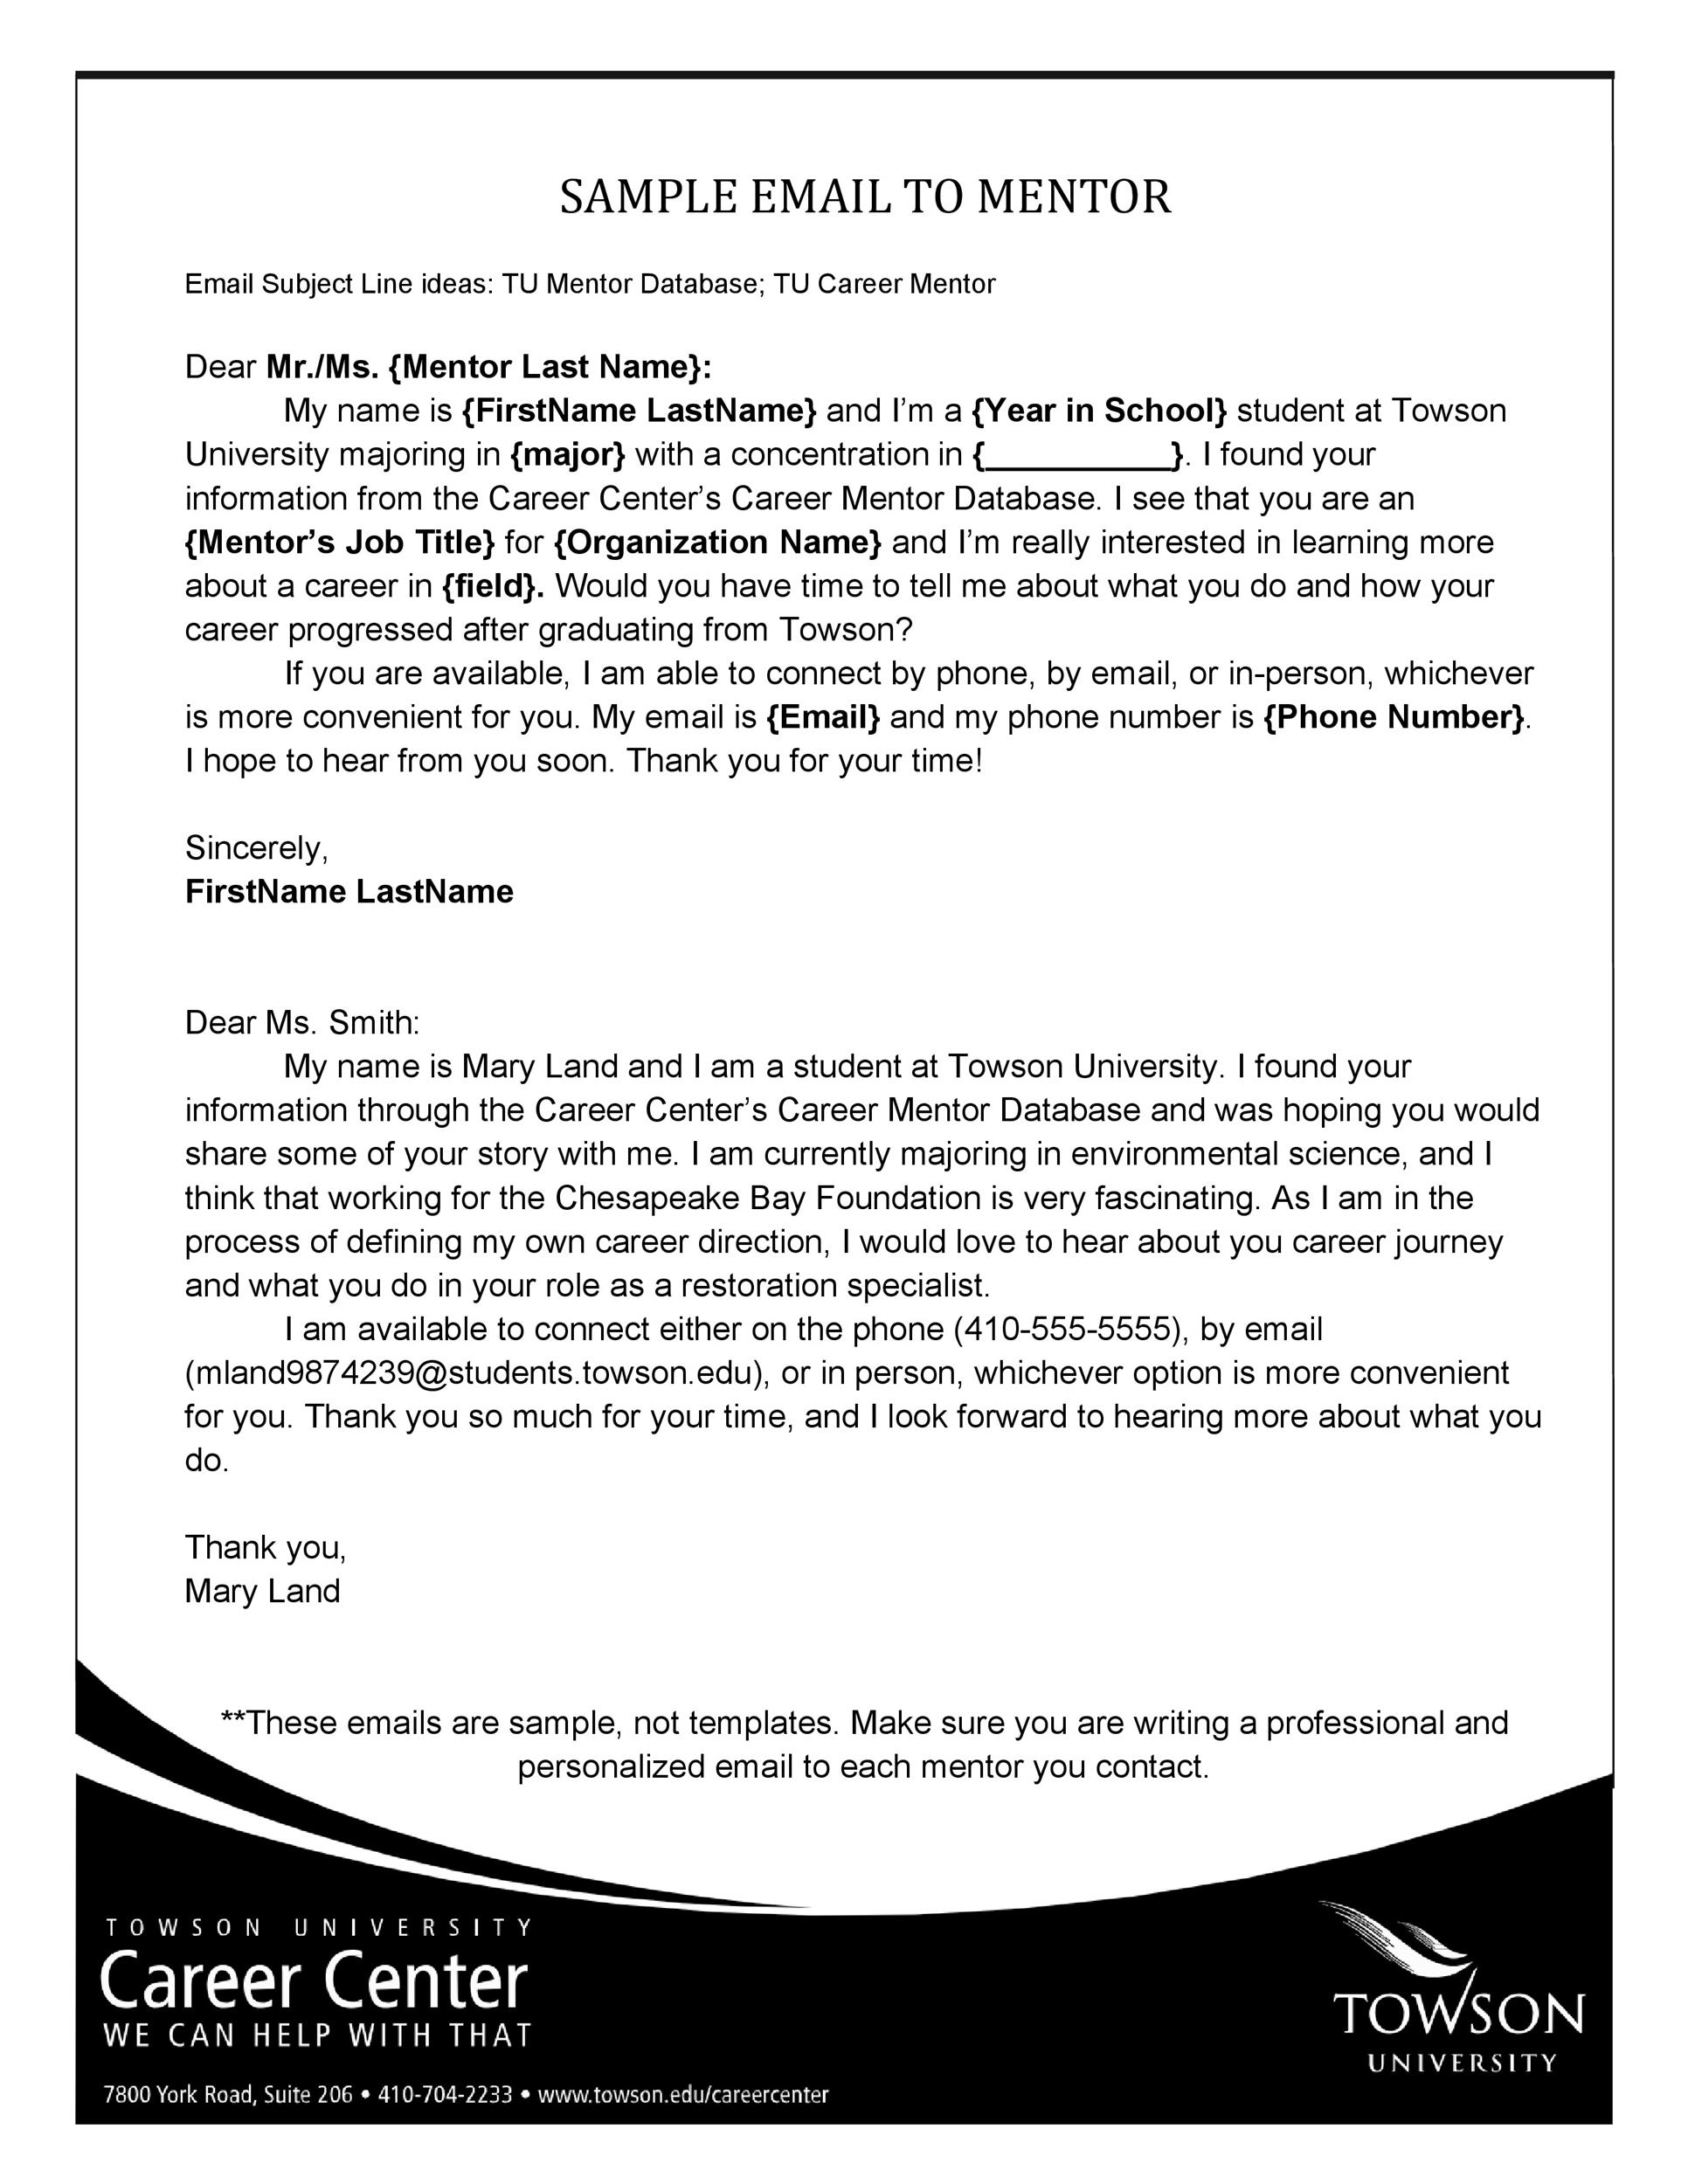 Free professional email example 22